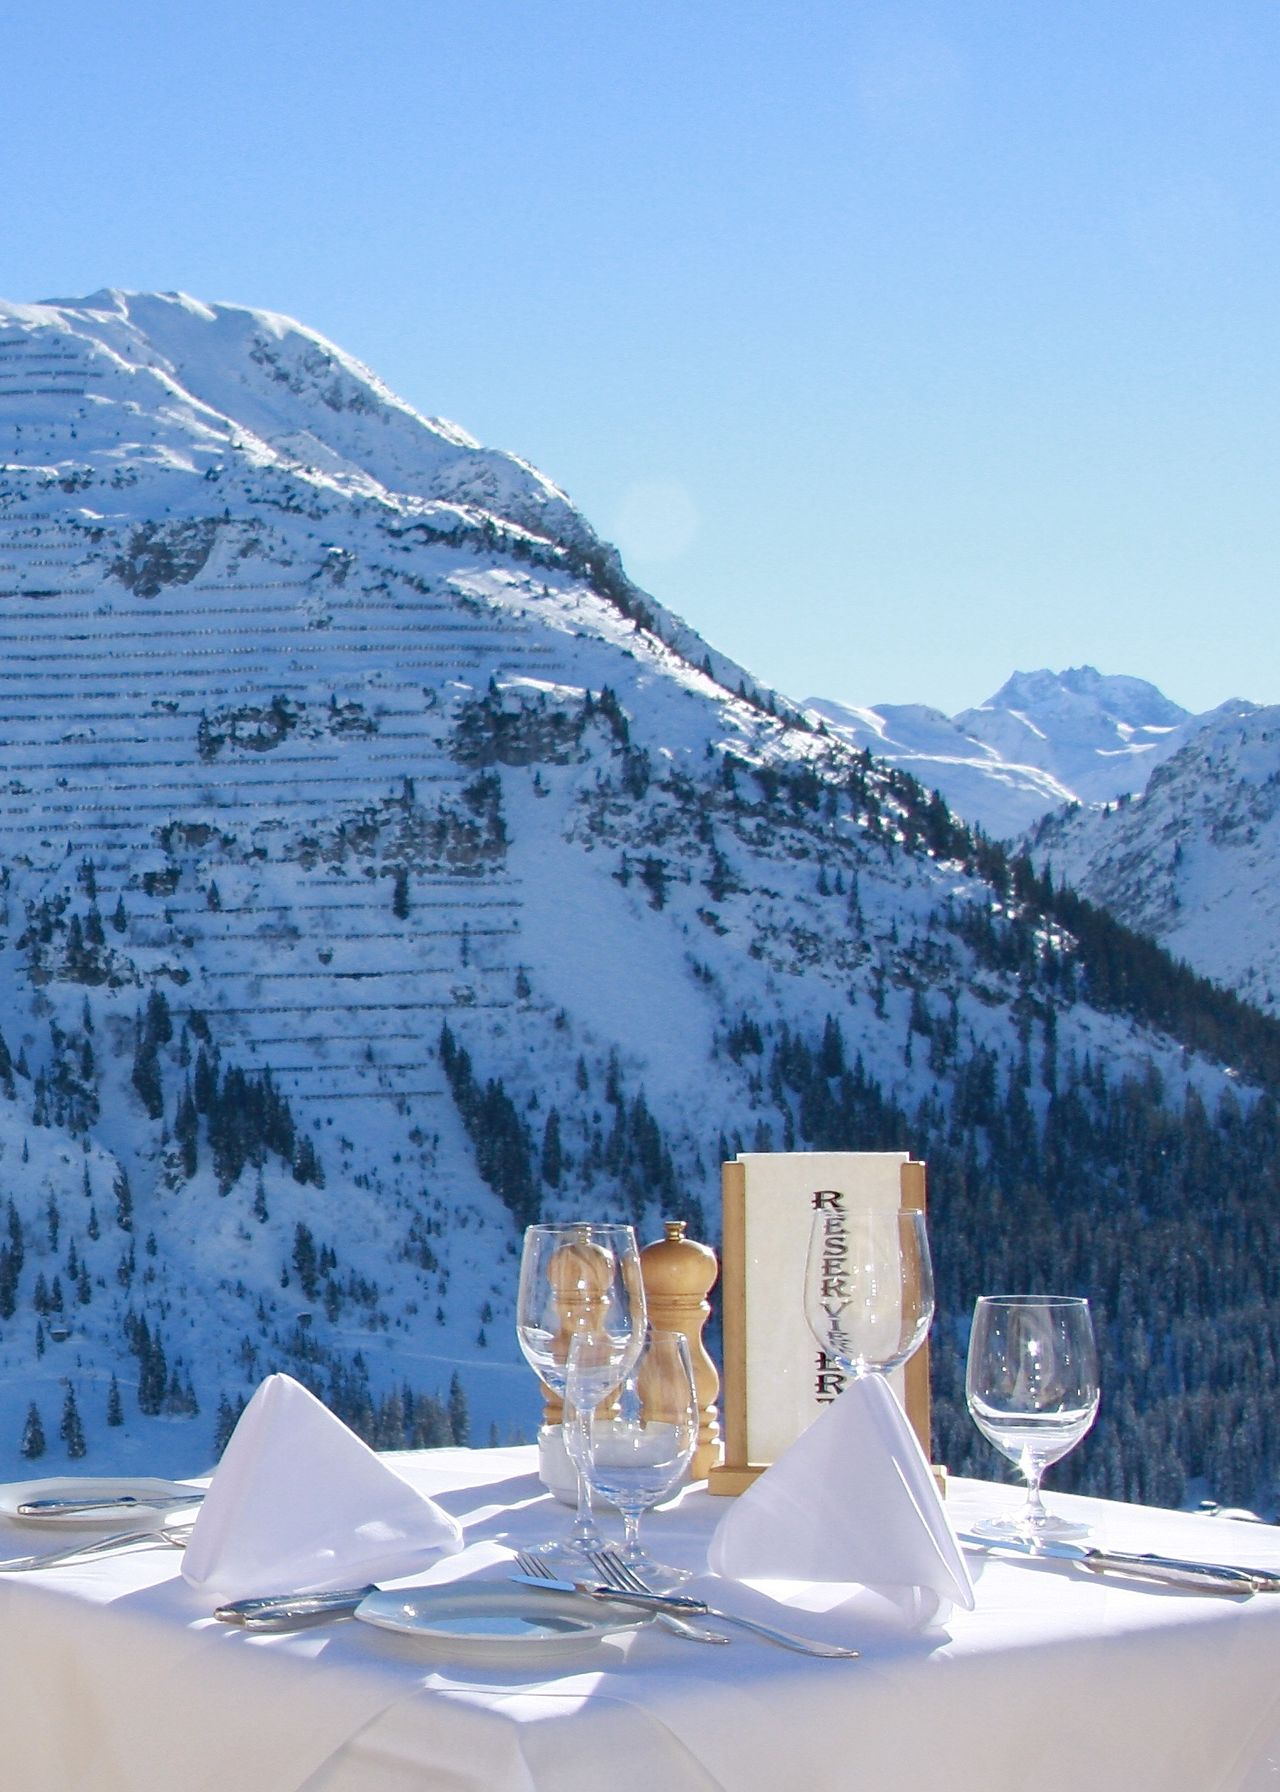 Alps Amazing View Arlberg Austria Beauty In Nature Christmastime Enjoying A Meal Exceptional Photographs EyeEm Best Shots Food And Drink Lunch Time! Oberlech Outdoors Restaurant Scenic View Sky Snow Table Take Your Place Wineandmore Wineglass Winter Wine Moments